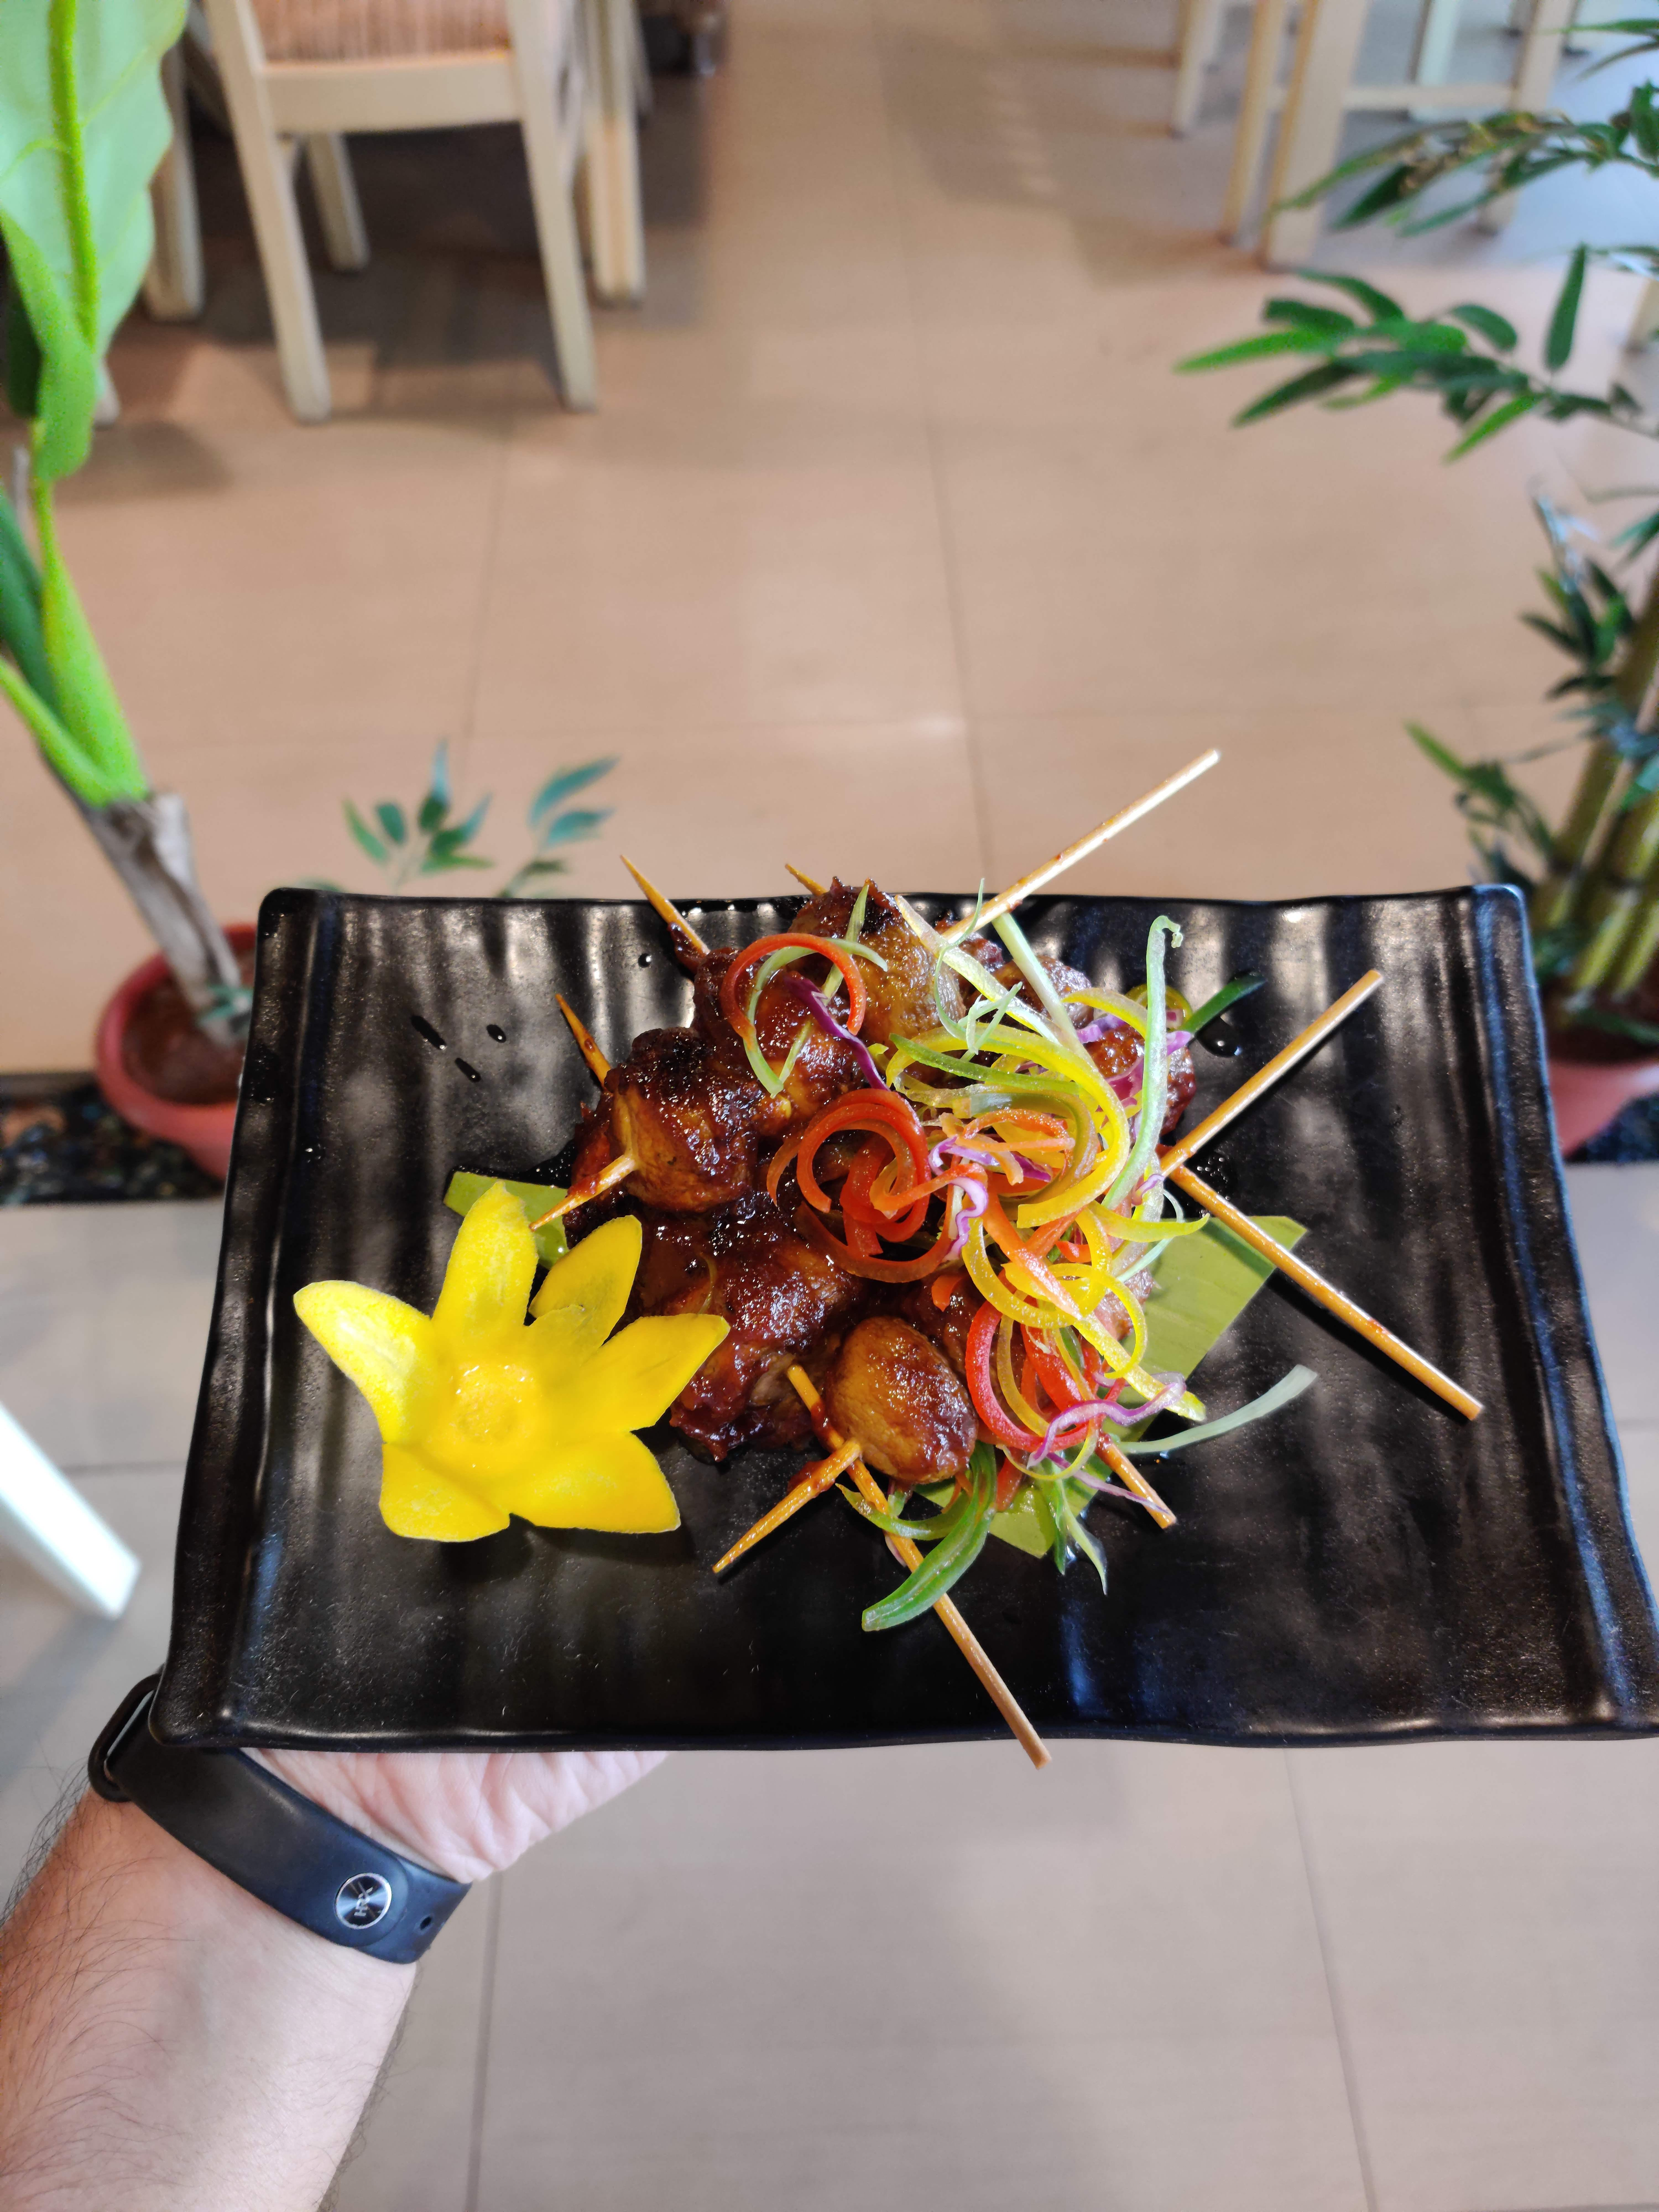 Drop By This Place For Some Soul Satisfying Thai Food!